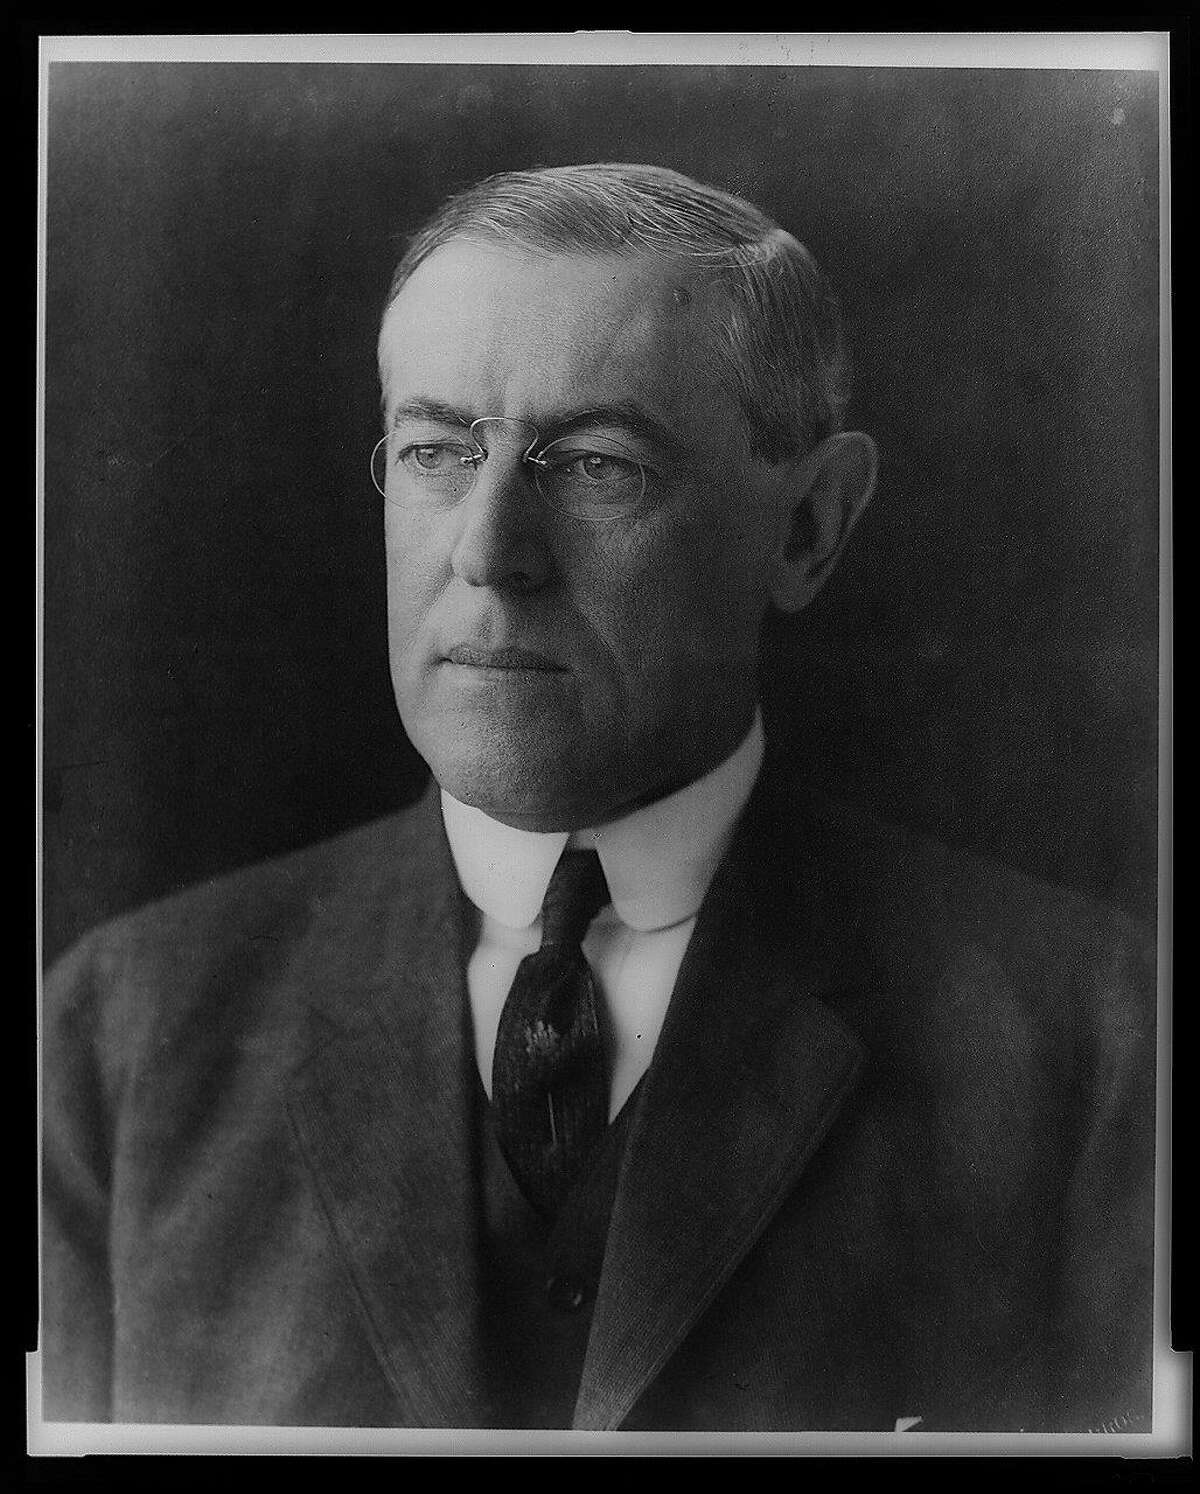 Woodrow Wilson, head-and-shoulders portrait, facing left /Pach Bros., N.Y. [President Wilson arrived in France on December 13, 1918, becoming the first chief executive to visit Europe while in office.] Pach Brothers. CREATED/PUBLISHED: c1912 Dec. 2. MEDIUM: 1 photographic print. CALL NUMBER Item in PRES FILE - Wilson, Woodrow--Photo--Bust REPRODUCTION NUMBER LC-USZ62-13028 DLC (b&w film copy neg. of cropped image) LC-USZ62-249 DLC (b&w film copy neg.) REPOSITORY Library of Congress Prints and Photographs Division Washington, D.C. 20540 USA DIGITAL ID (b&w film copy neg. of cropped image) cph 3a55007 (b&w film copy neg.) cph 3a04218